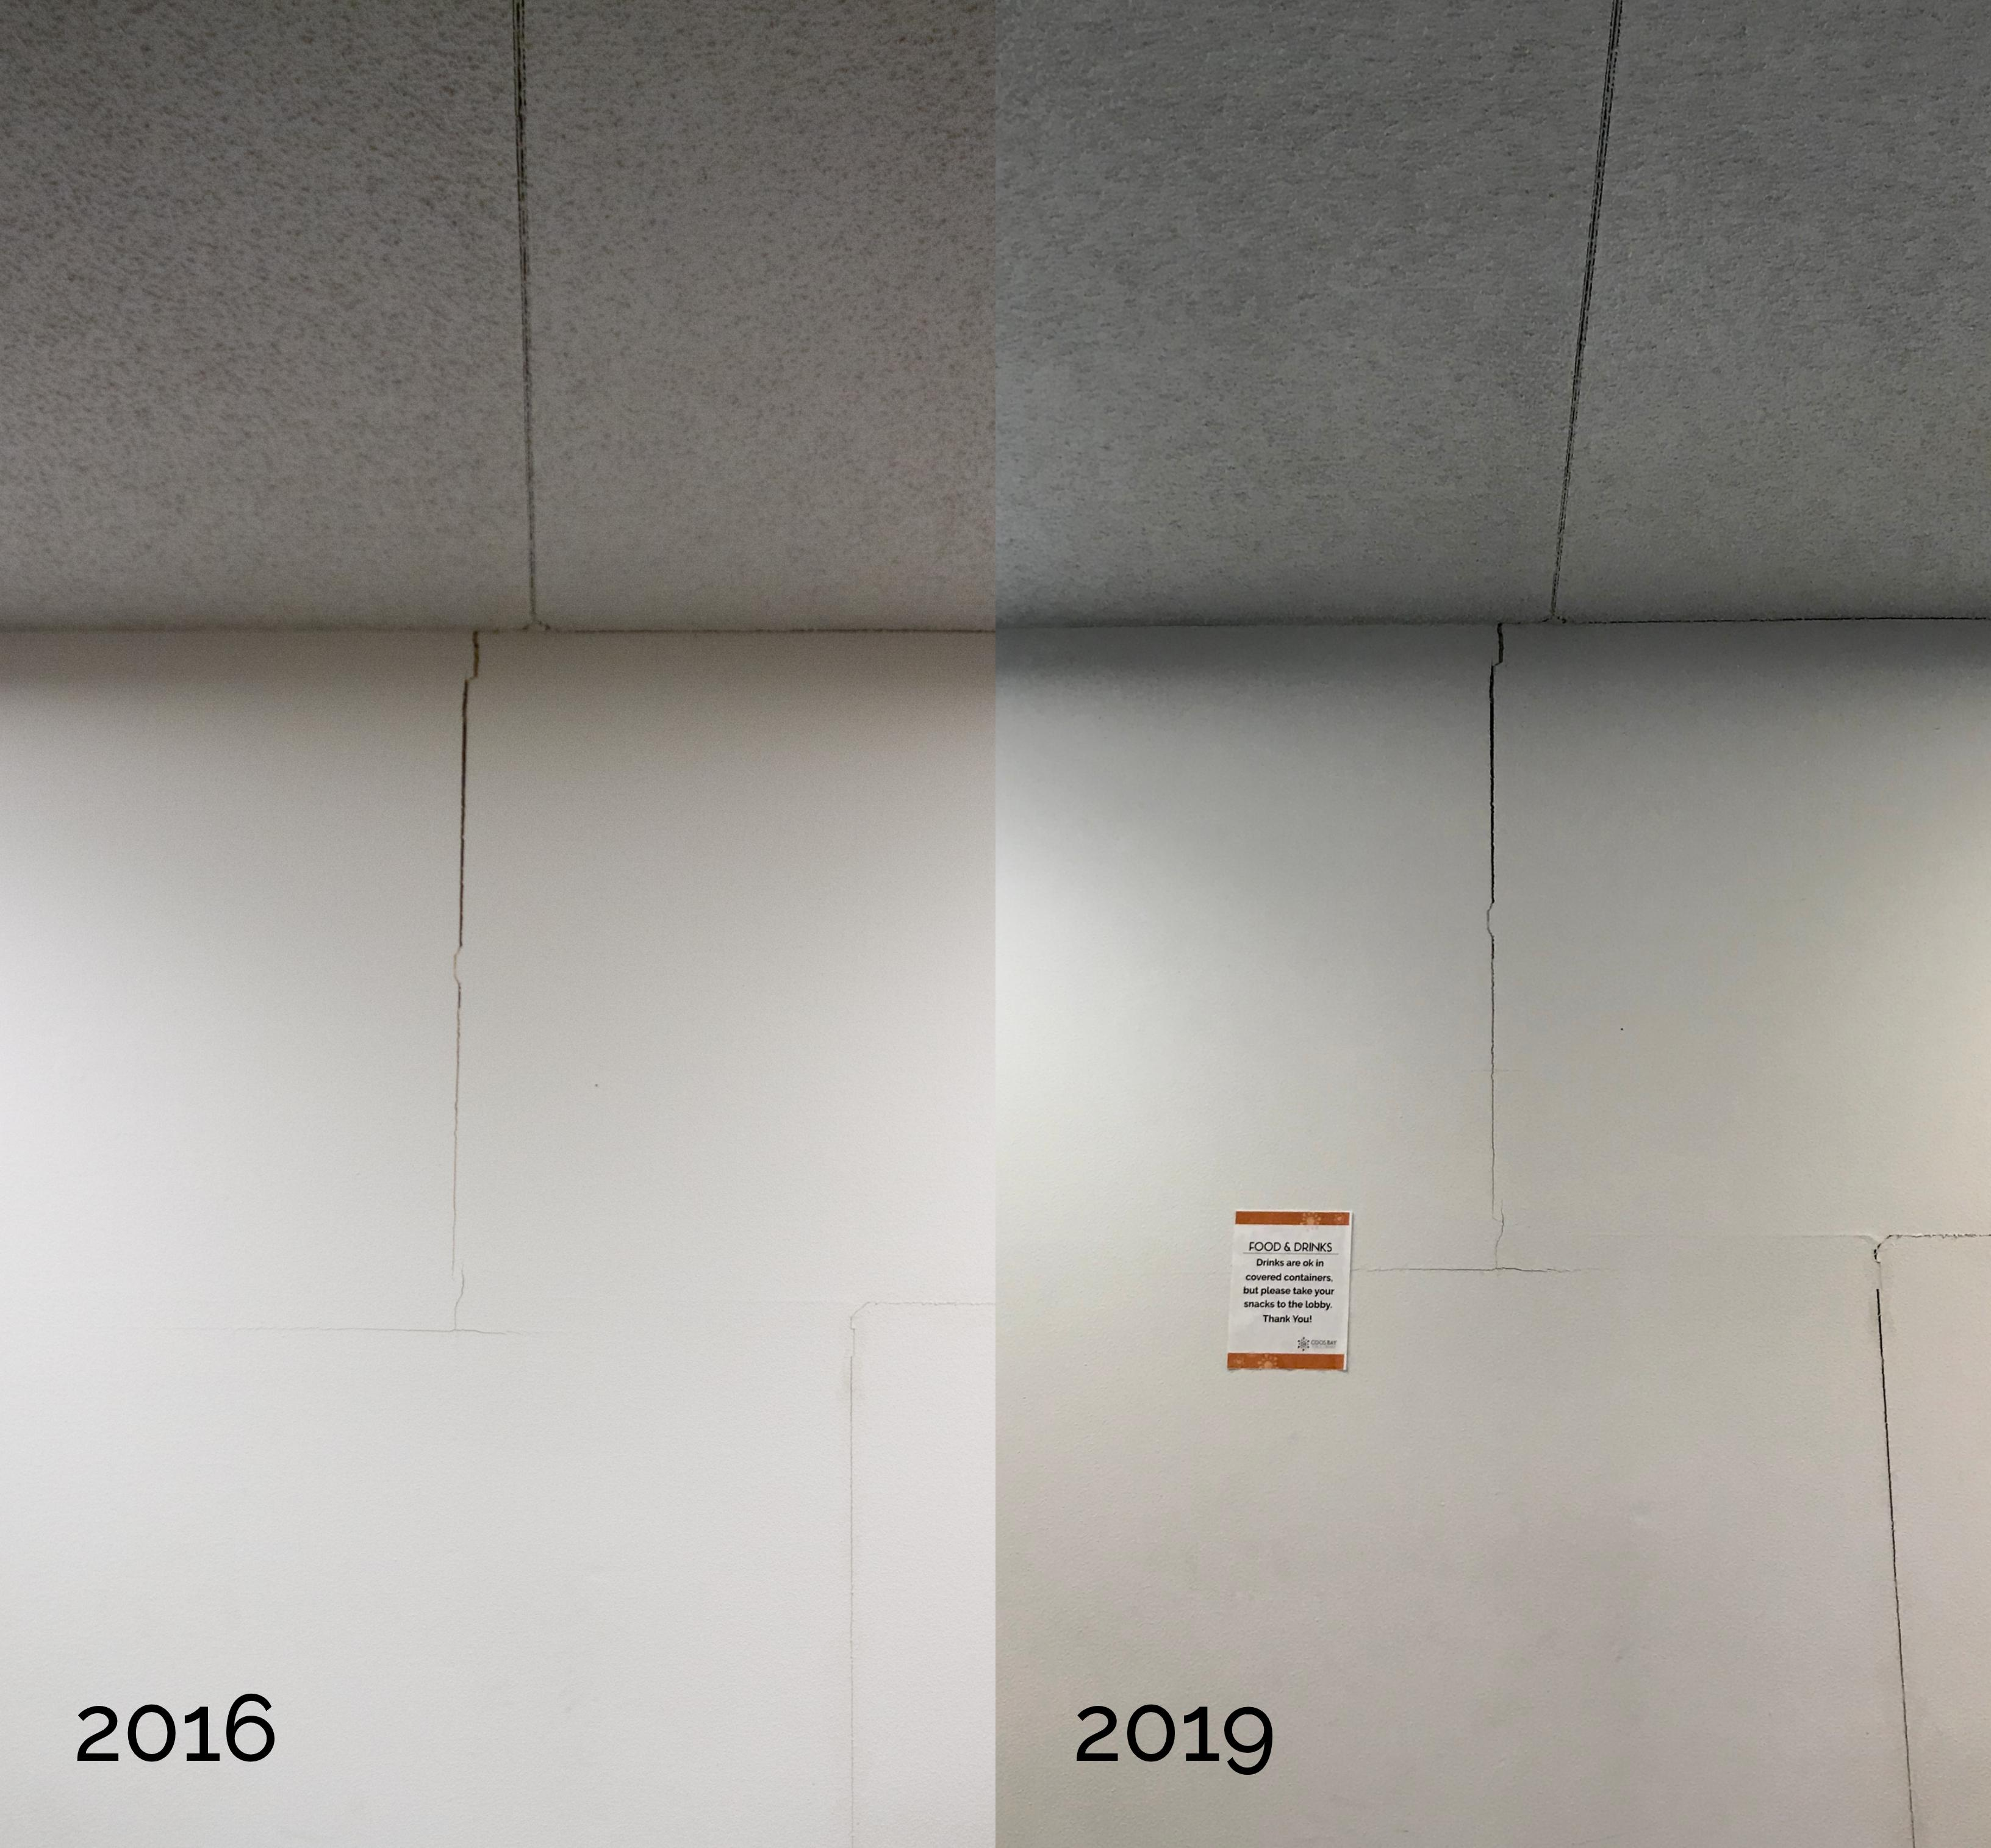 Cracks in wall comparison, 2016 and 2019